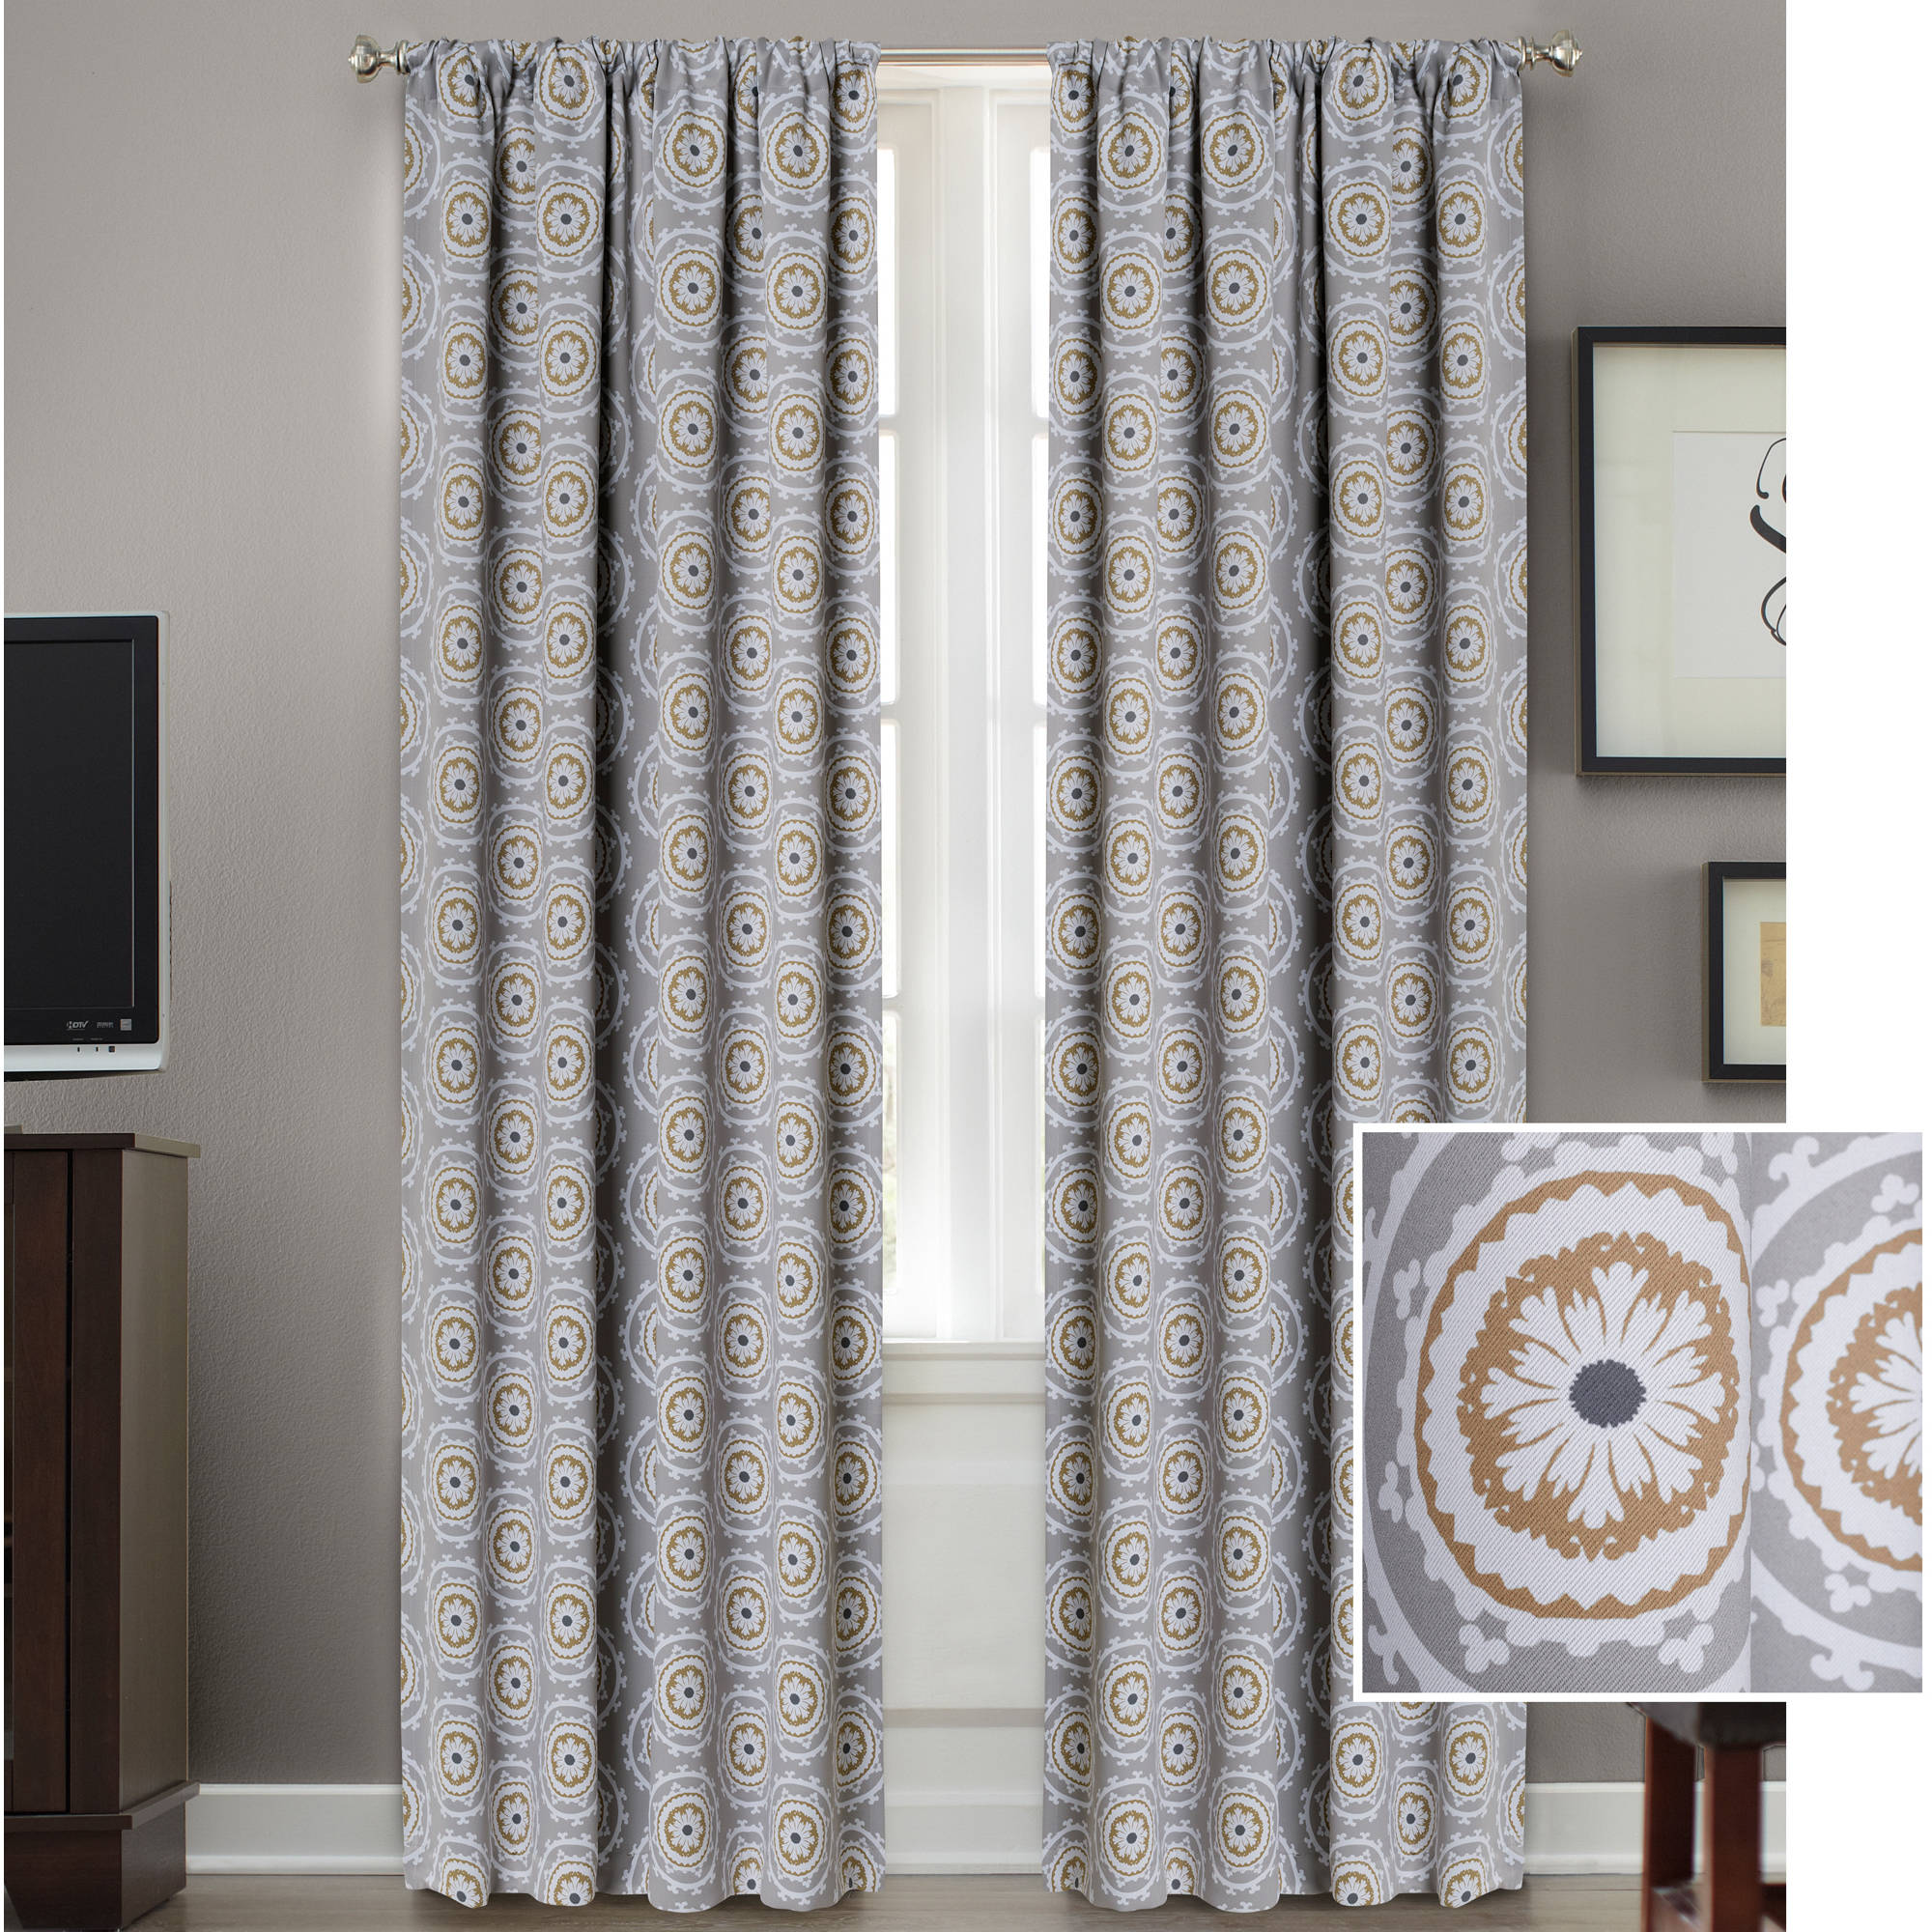 Click here to buy Better Homes and Gardens Medallion Room Darkening Curtain Panel by Colordrift LLC.